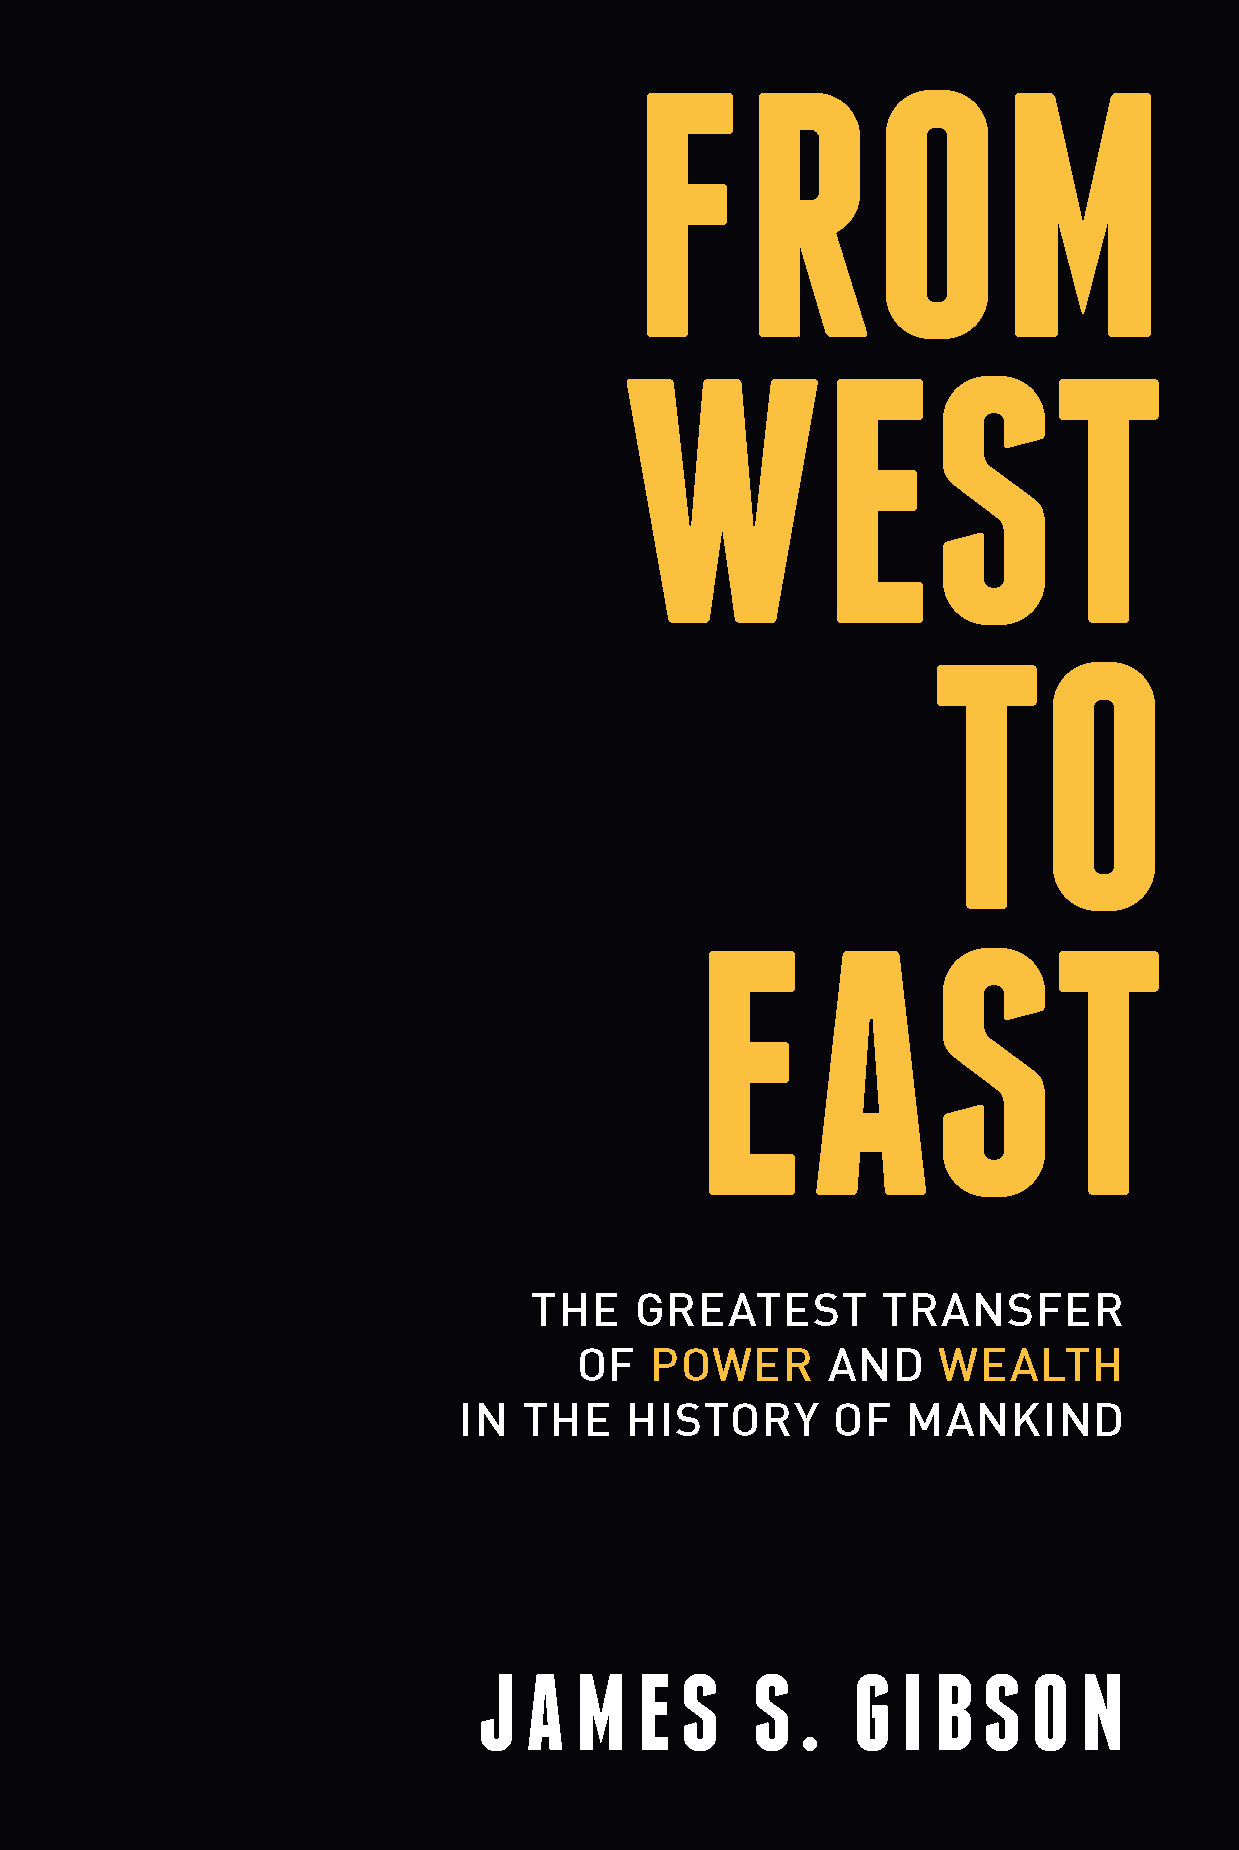 Learn about the greatest transfer of wealth and power in the history of Mankind in the book From West to East